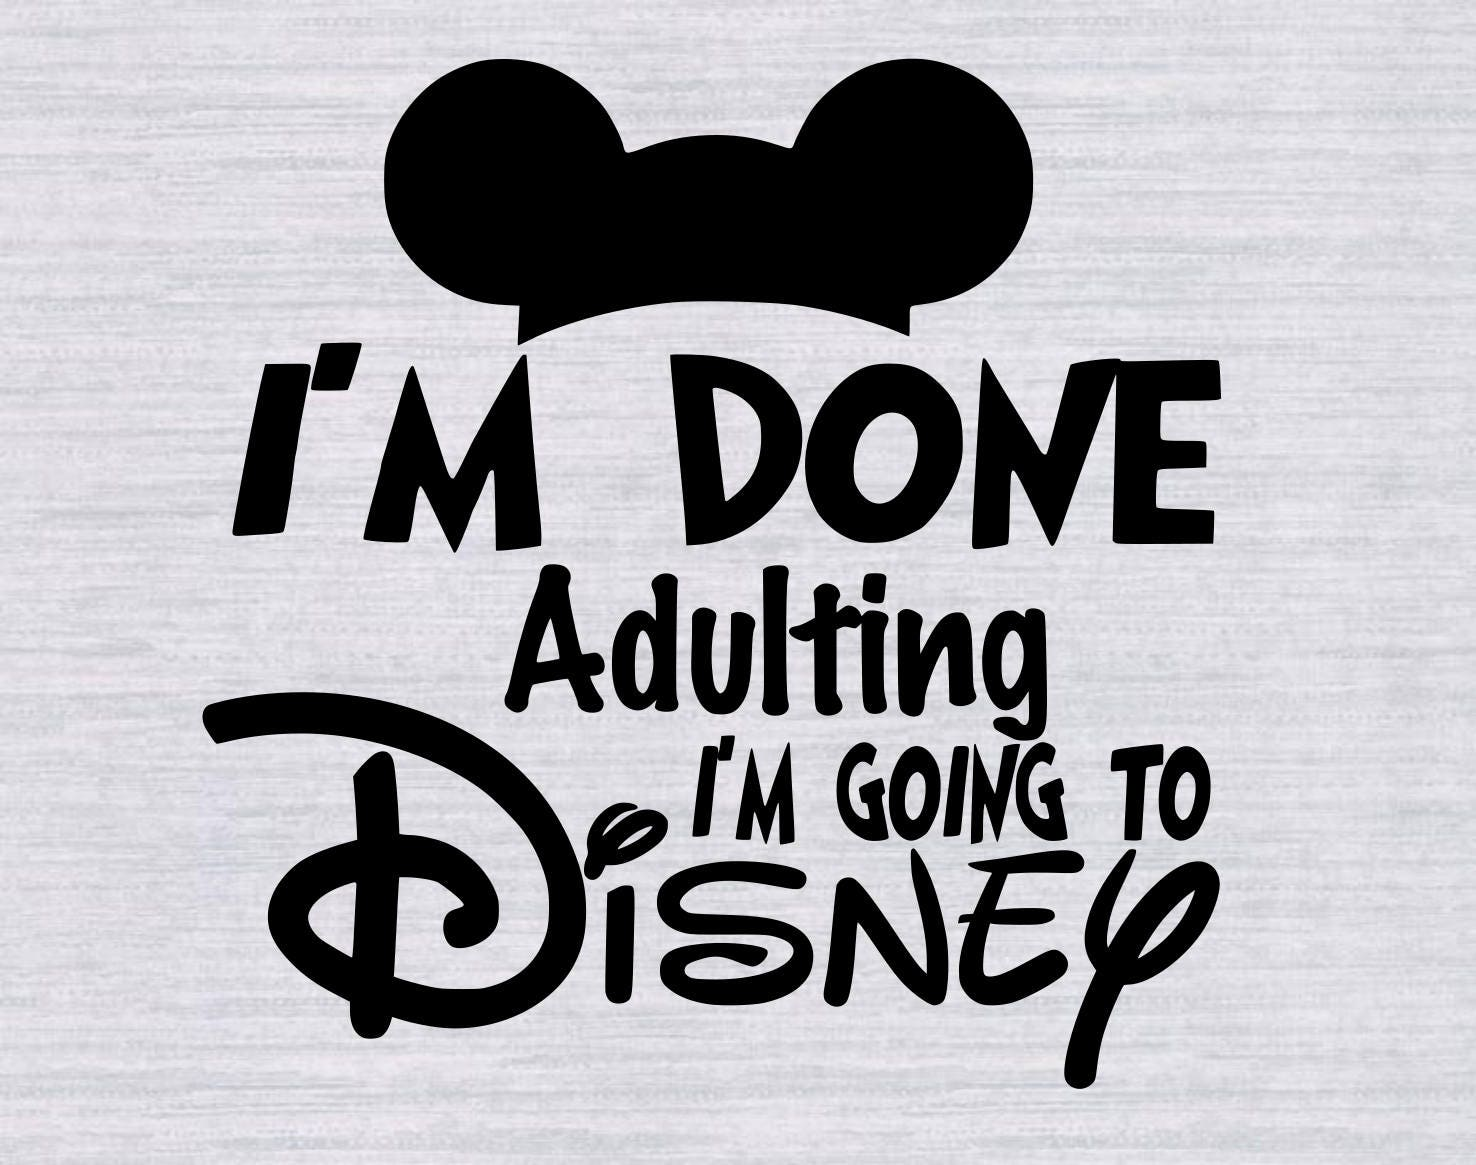 Collectionddwn Disney Castle Logo Black And White as well Im Done Adulting Im Going To Disney Svg additionally Tinkerbell svg as well Karuna Reiki Symbols And Meanings further Disney Cruise Line Logo Coloring Pages. on magic kingdom silhouette